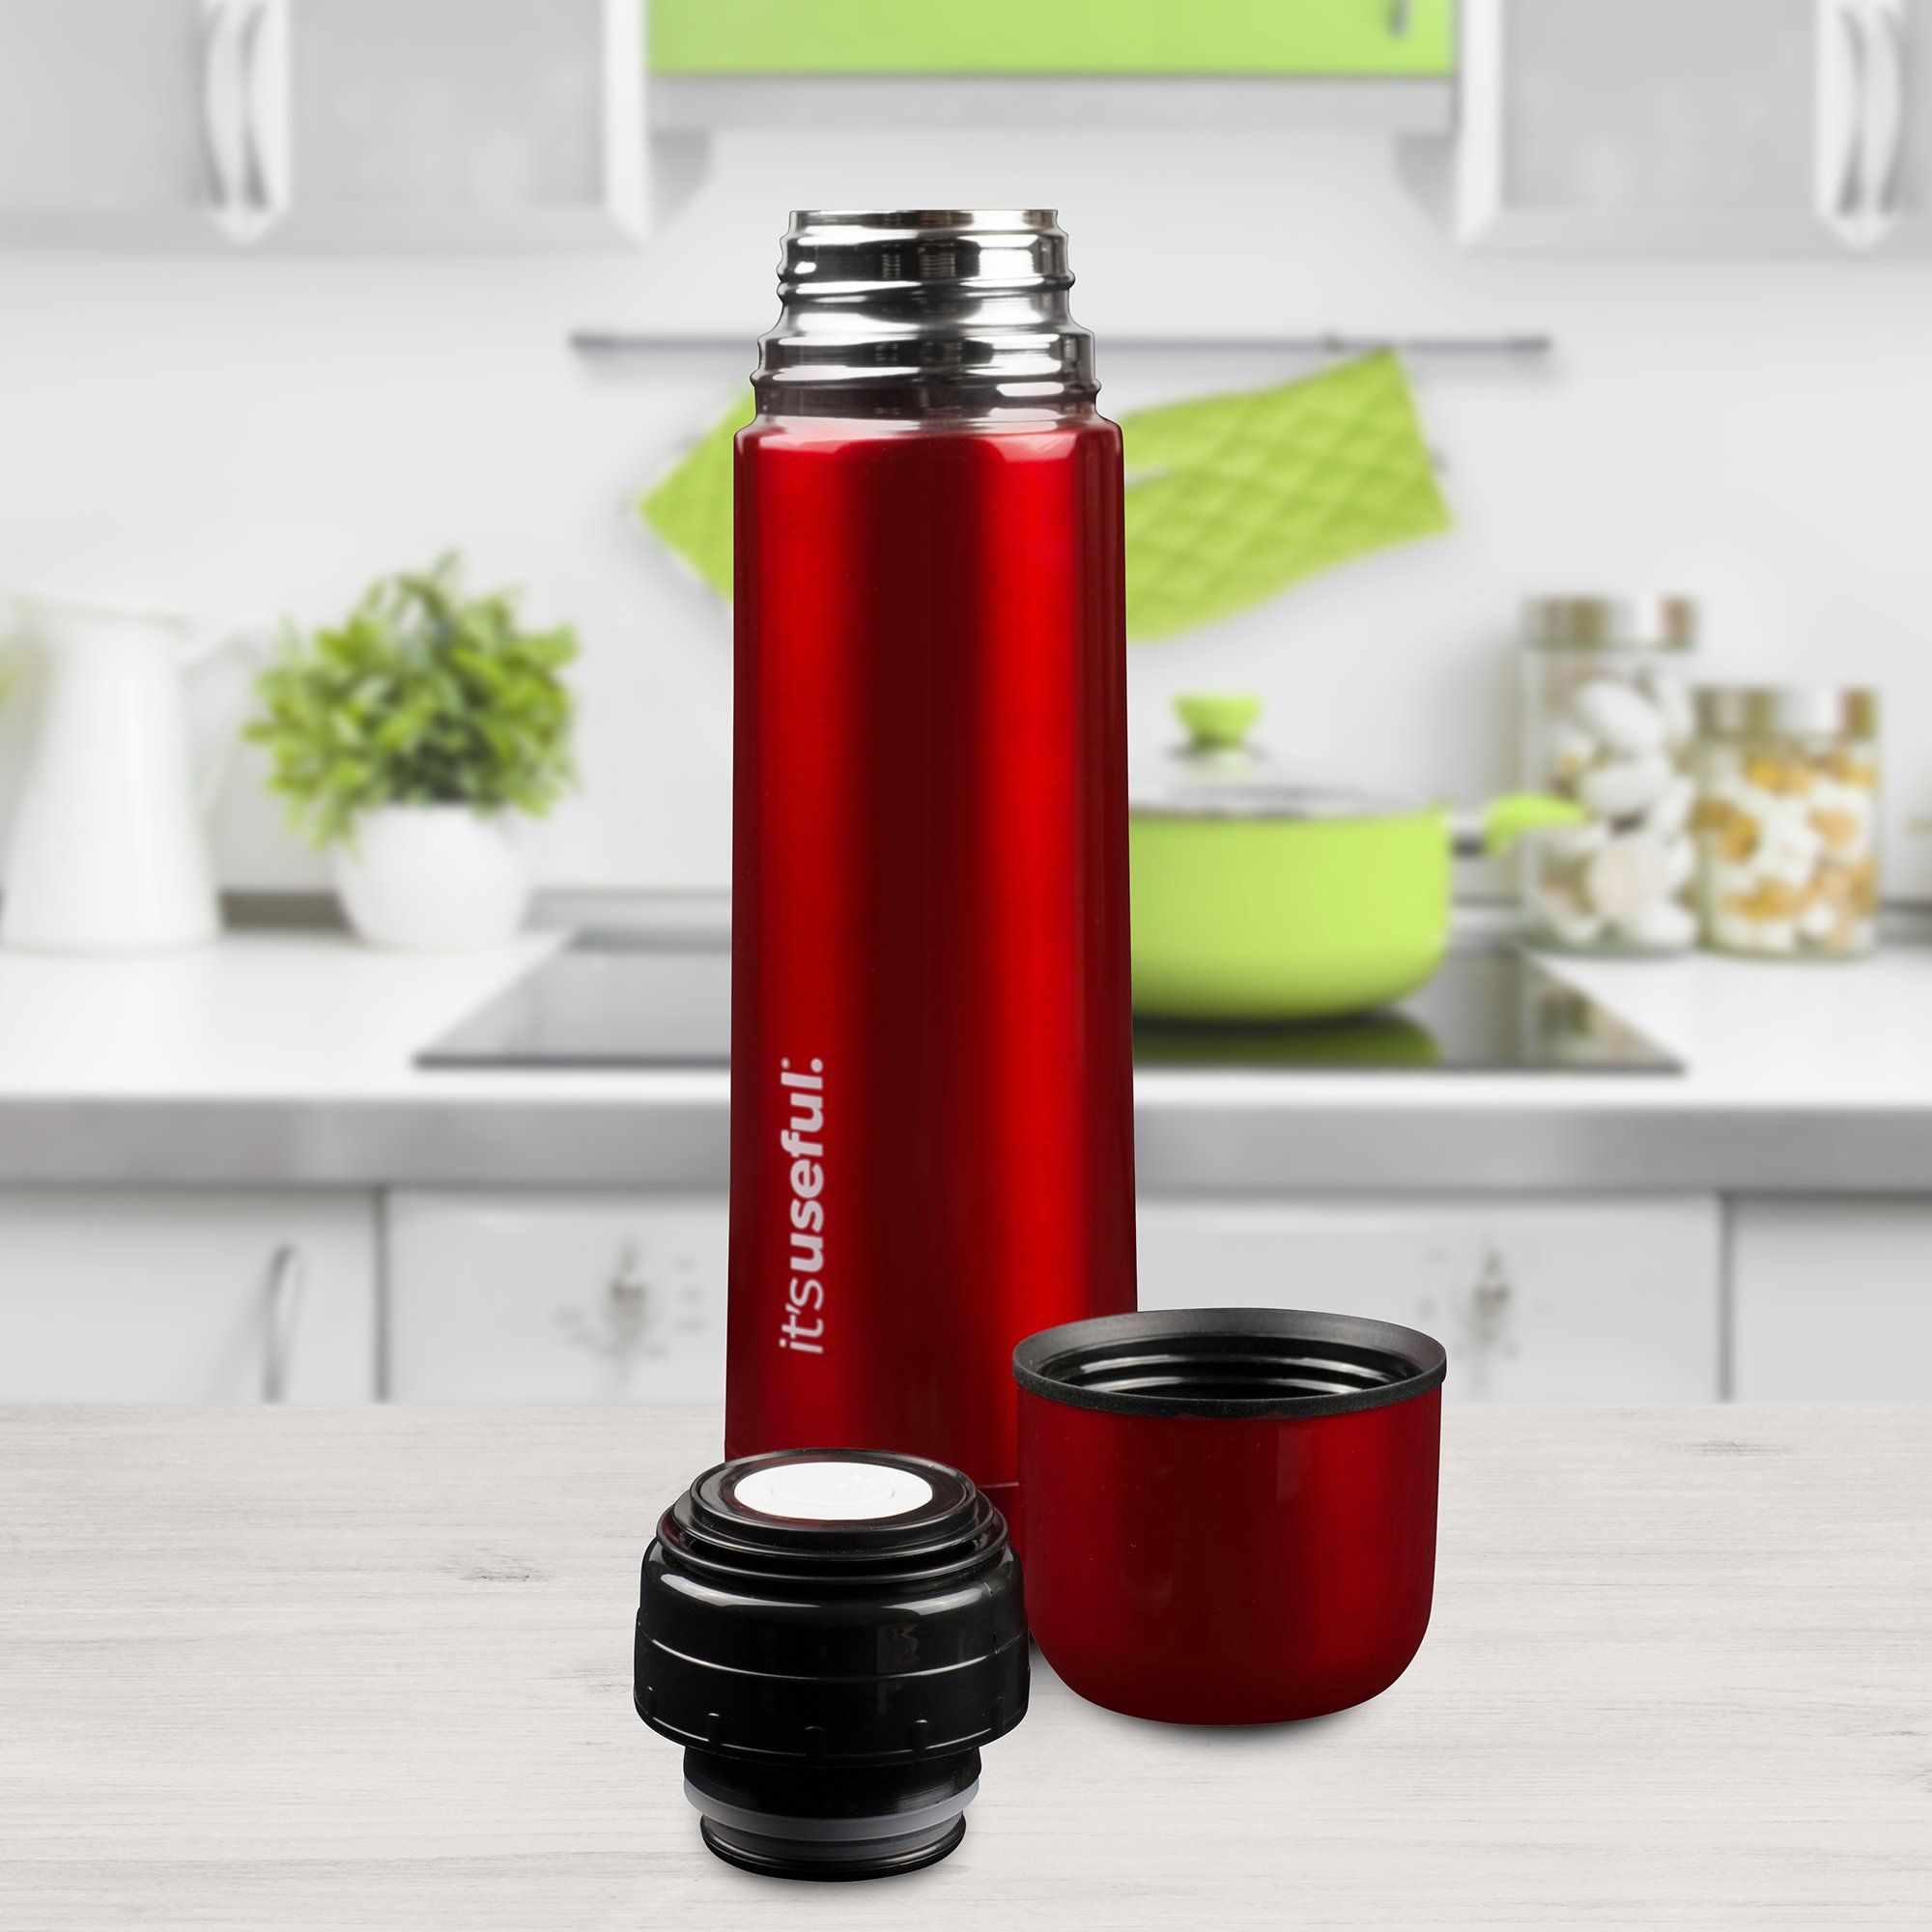 Its Useful 24 oz Stainless Steel Thermos Double Insulated